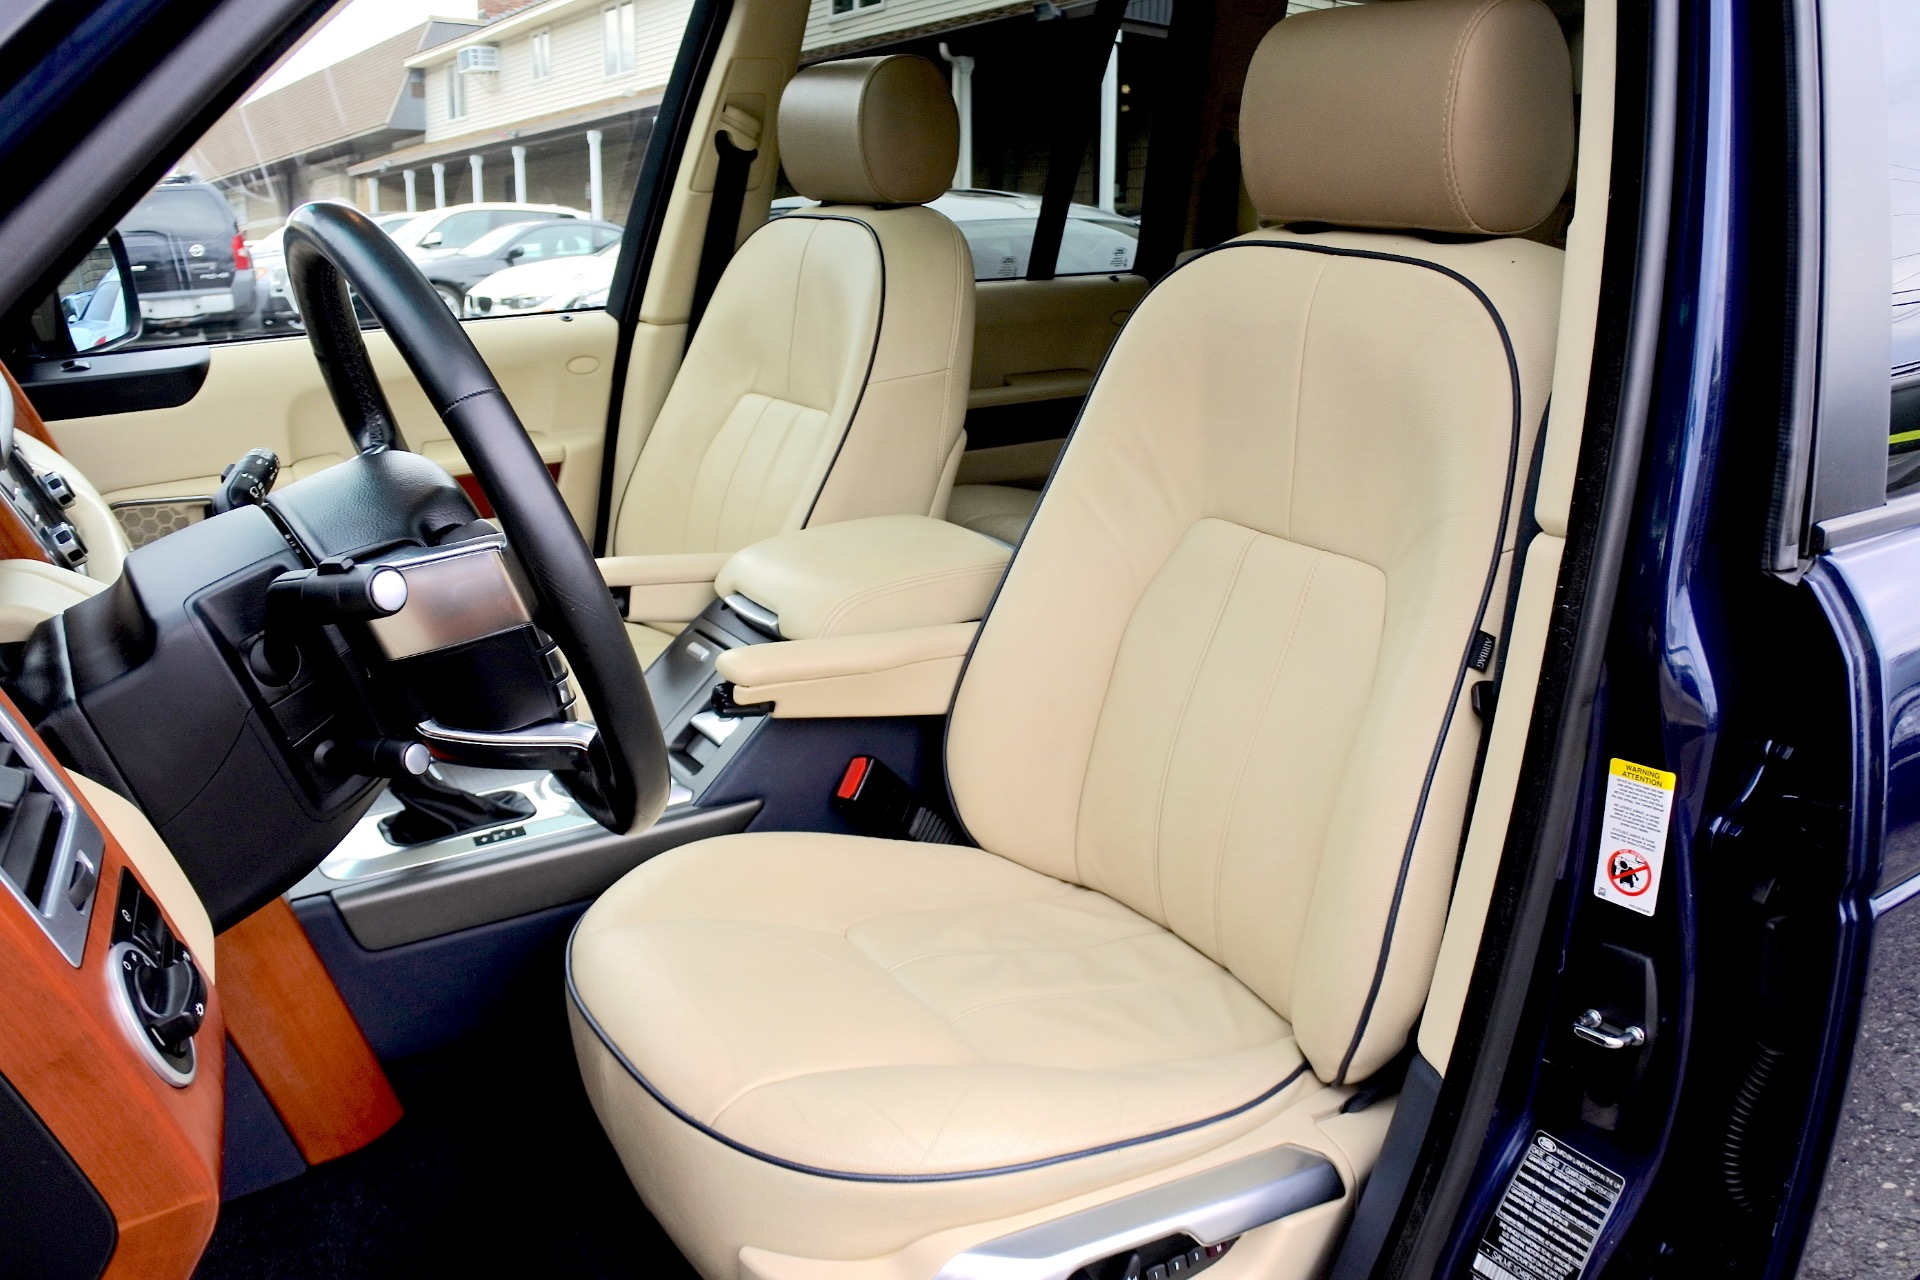 Used 2011 Land Rover Range Rover HSE Used 2011 Land Rover Range Rover HSE for sale  at Metro West Motorcars LLC in Shrewsbury MA 14